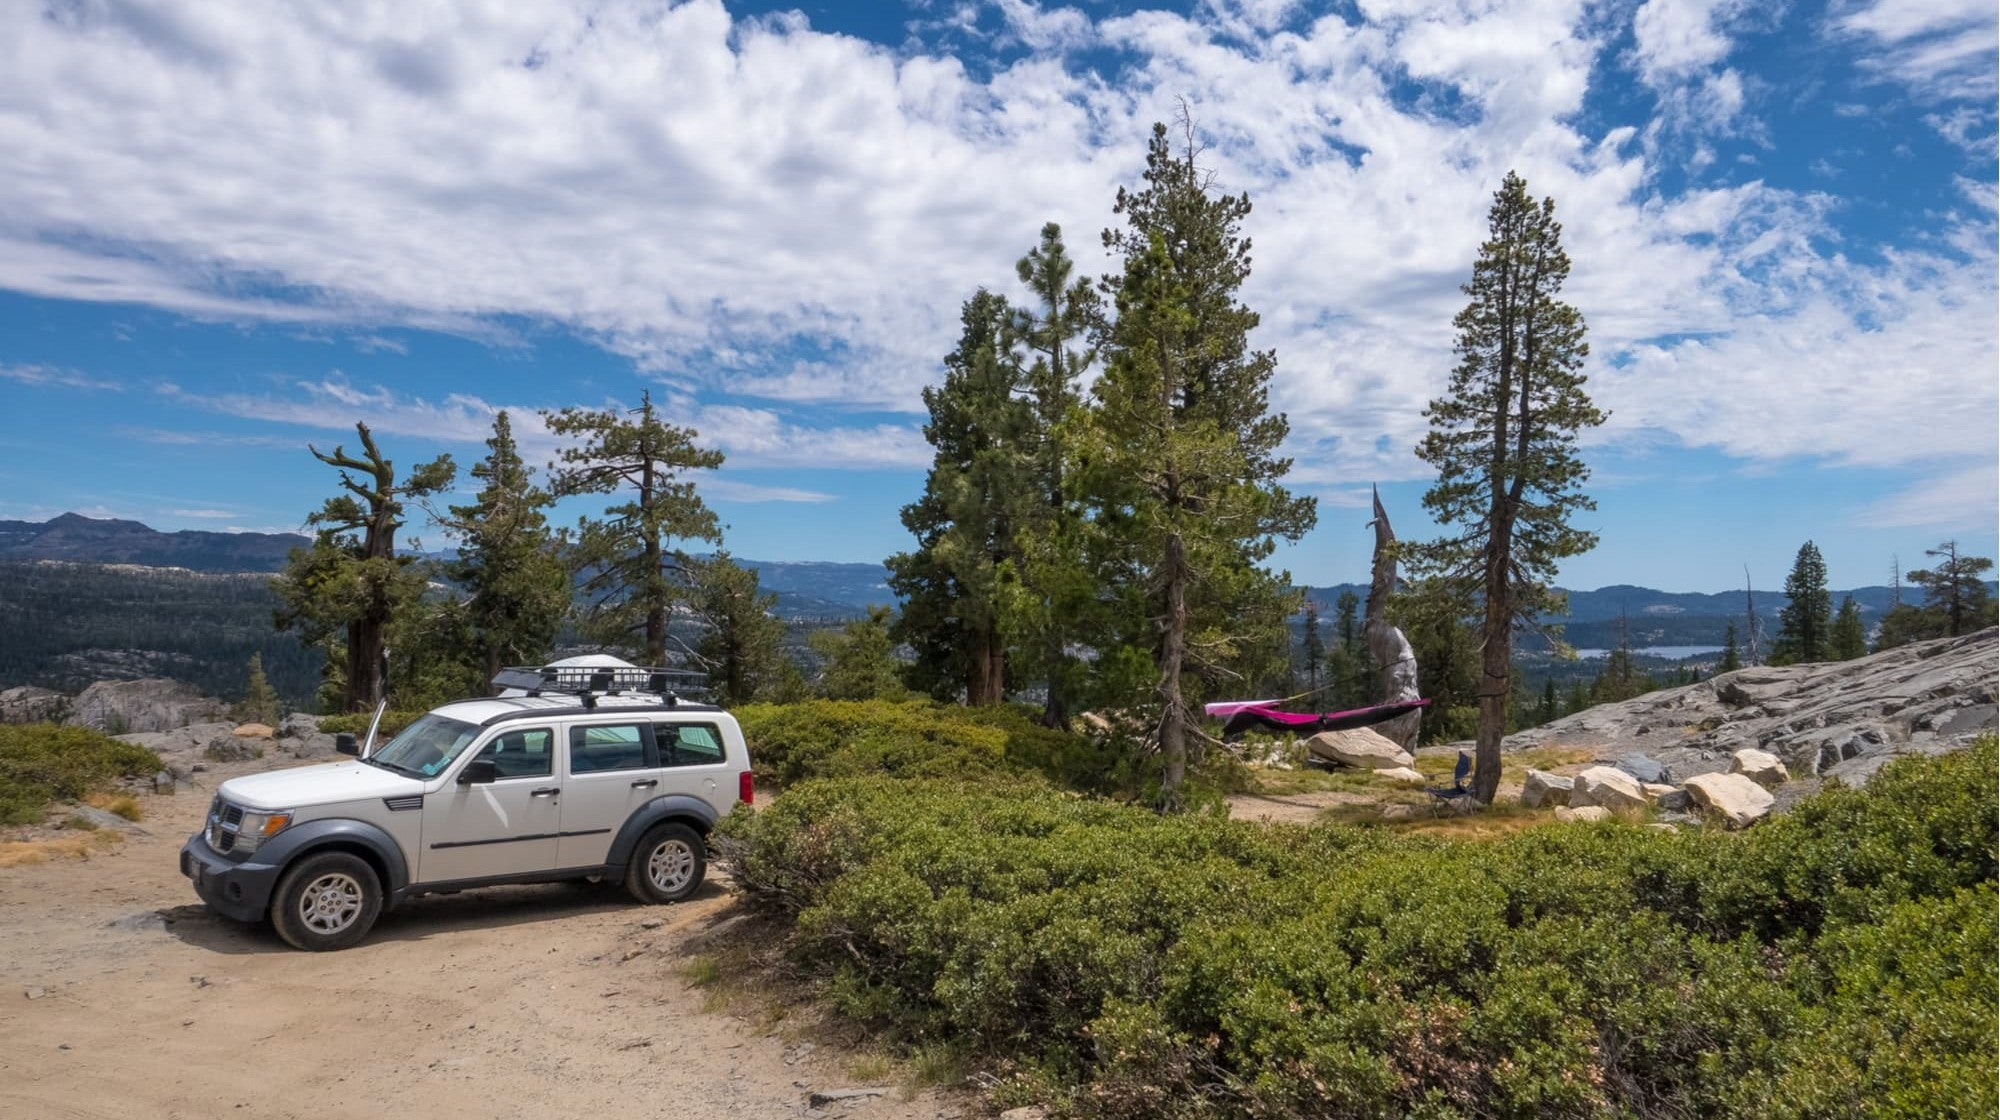 12 Free Campgrounds In California And How To Find More,Vital Proteins Collagen Peptides Before And After Cellulite